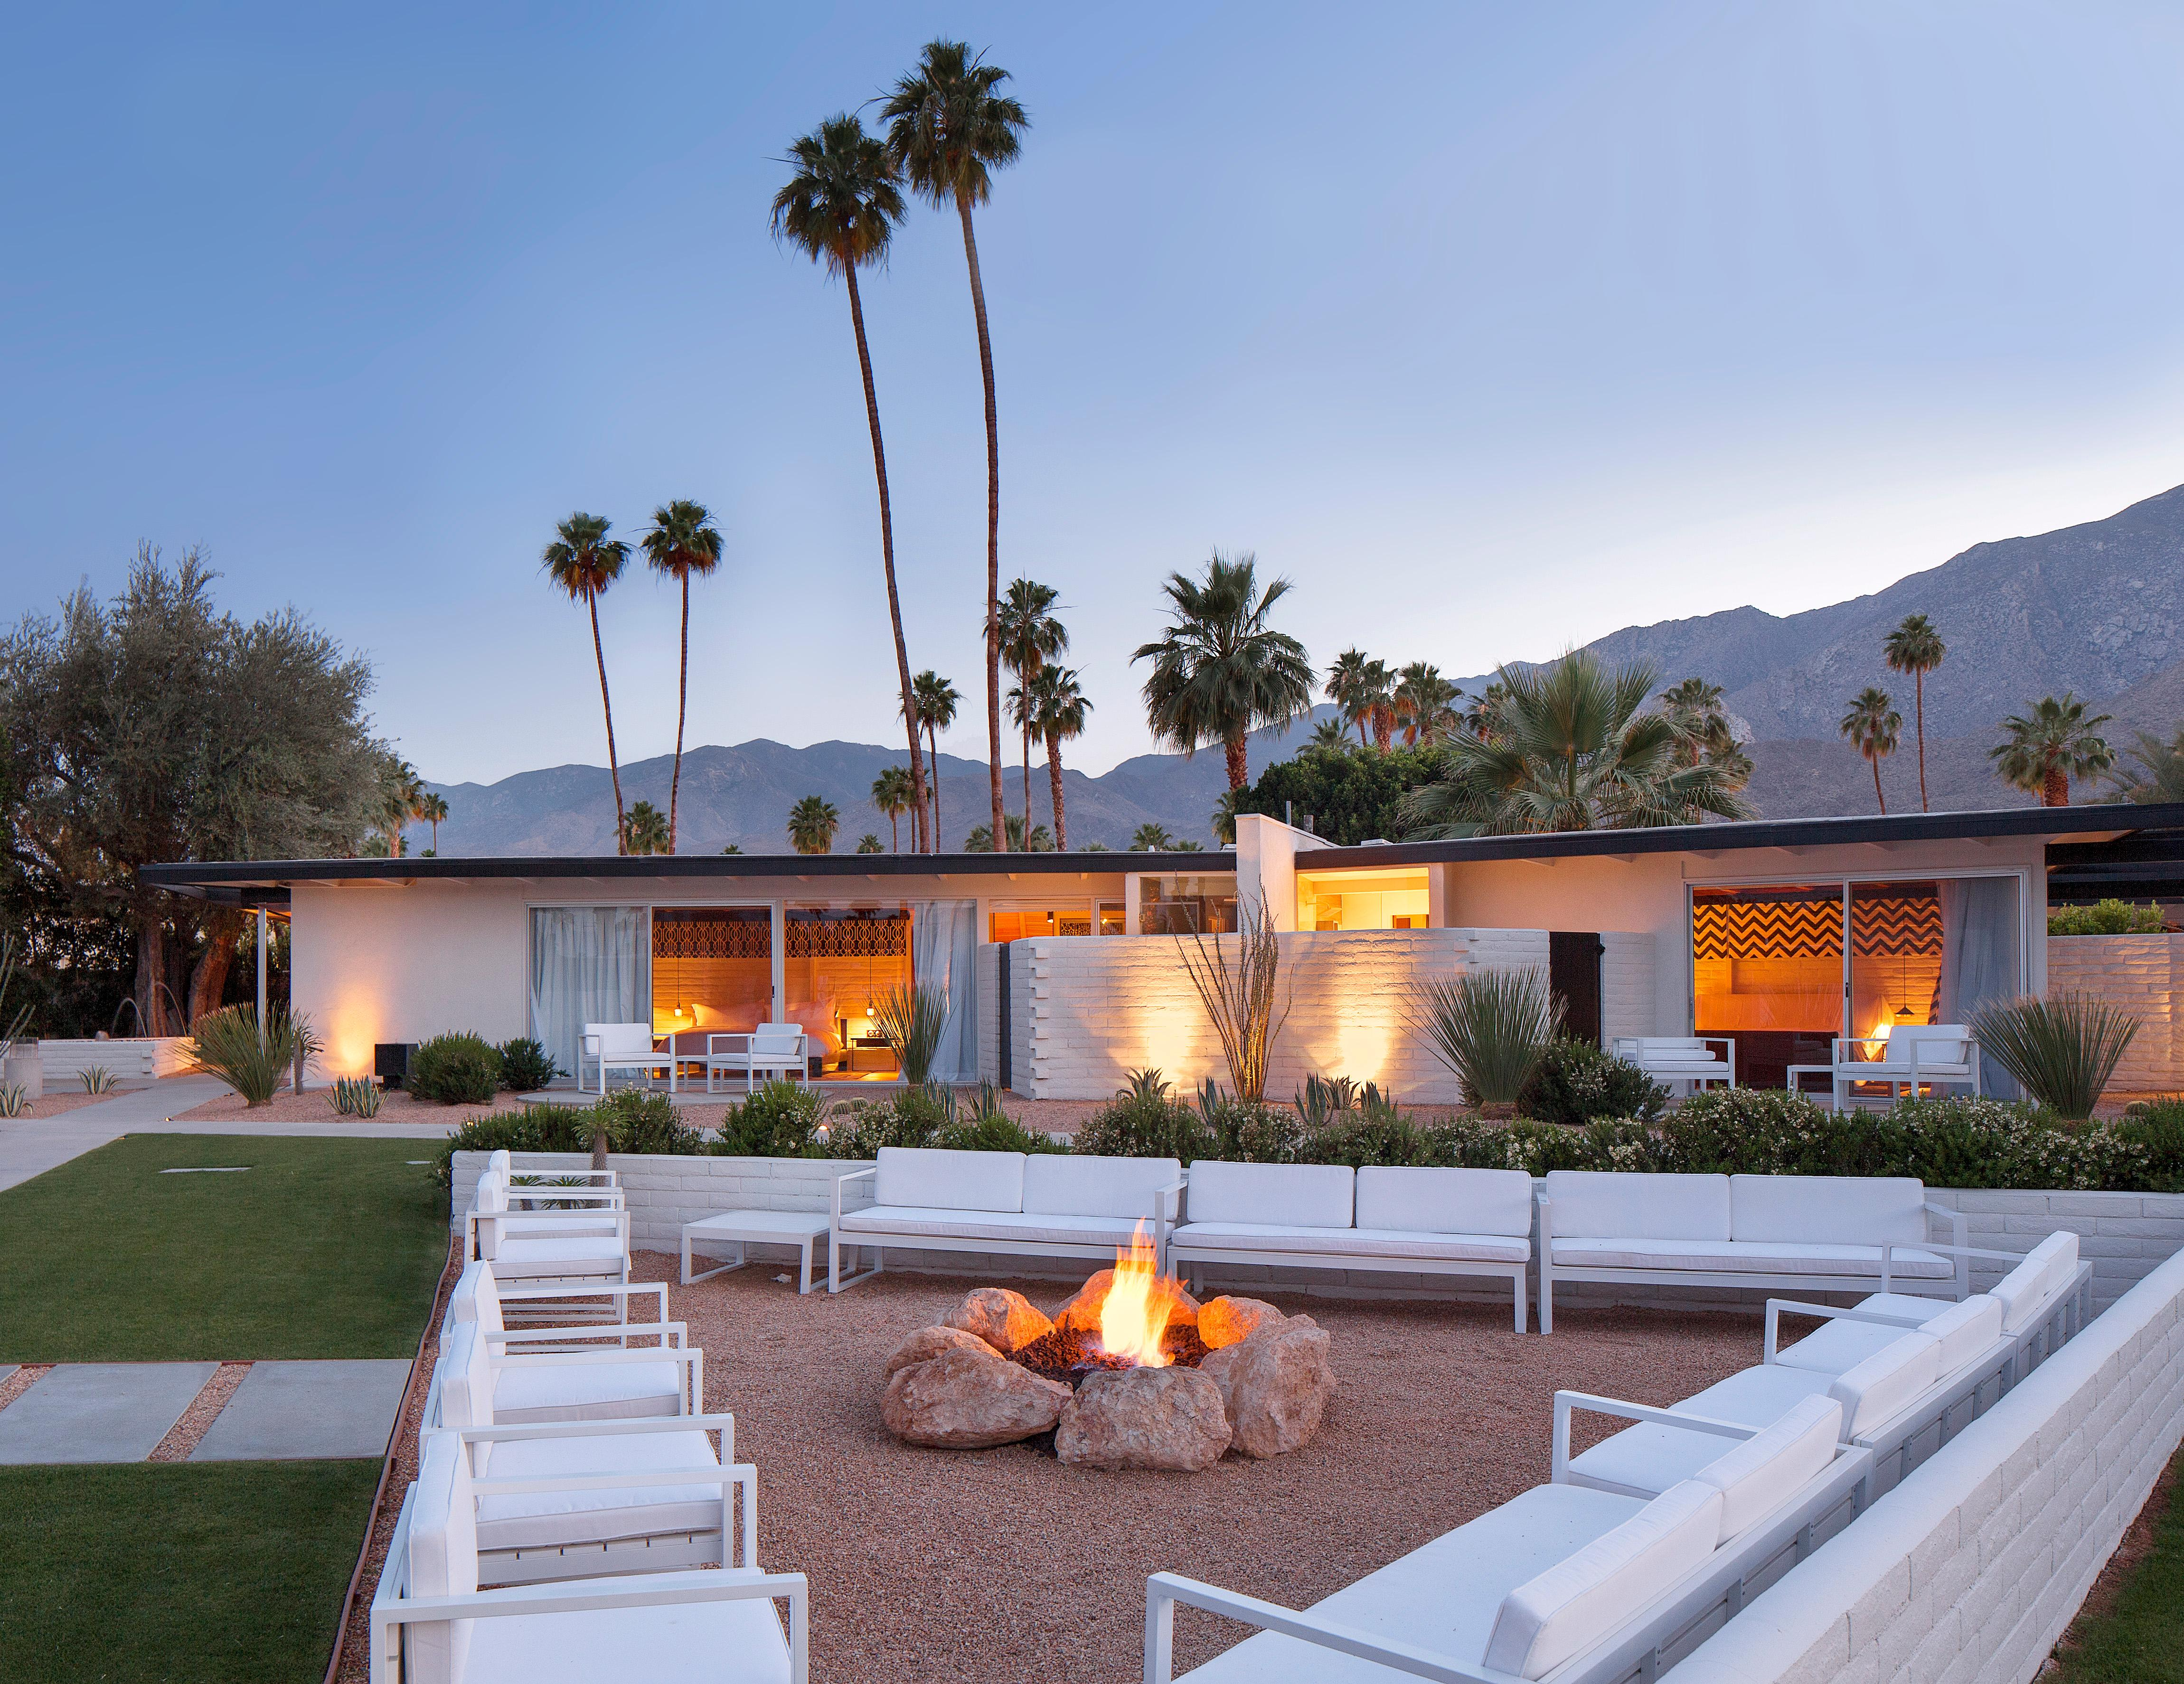 One of the first things you'll notice when you visit Palm Springs is the unique architectural style known as desert modernism.